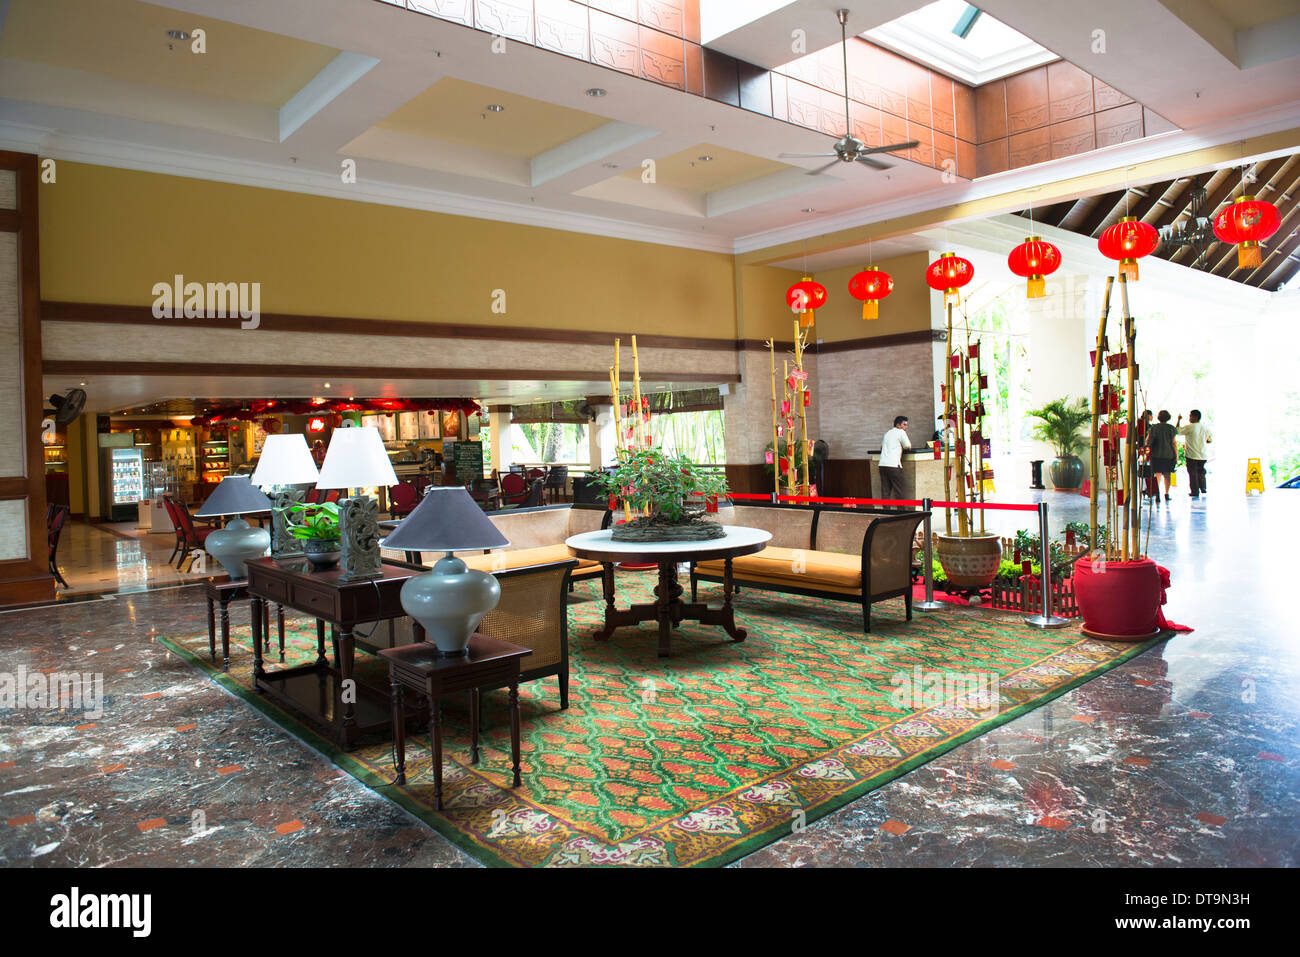 The lobby of the Marriot resort and spa in Miri, Malaysia. - Stock Image